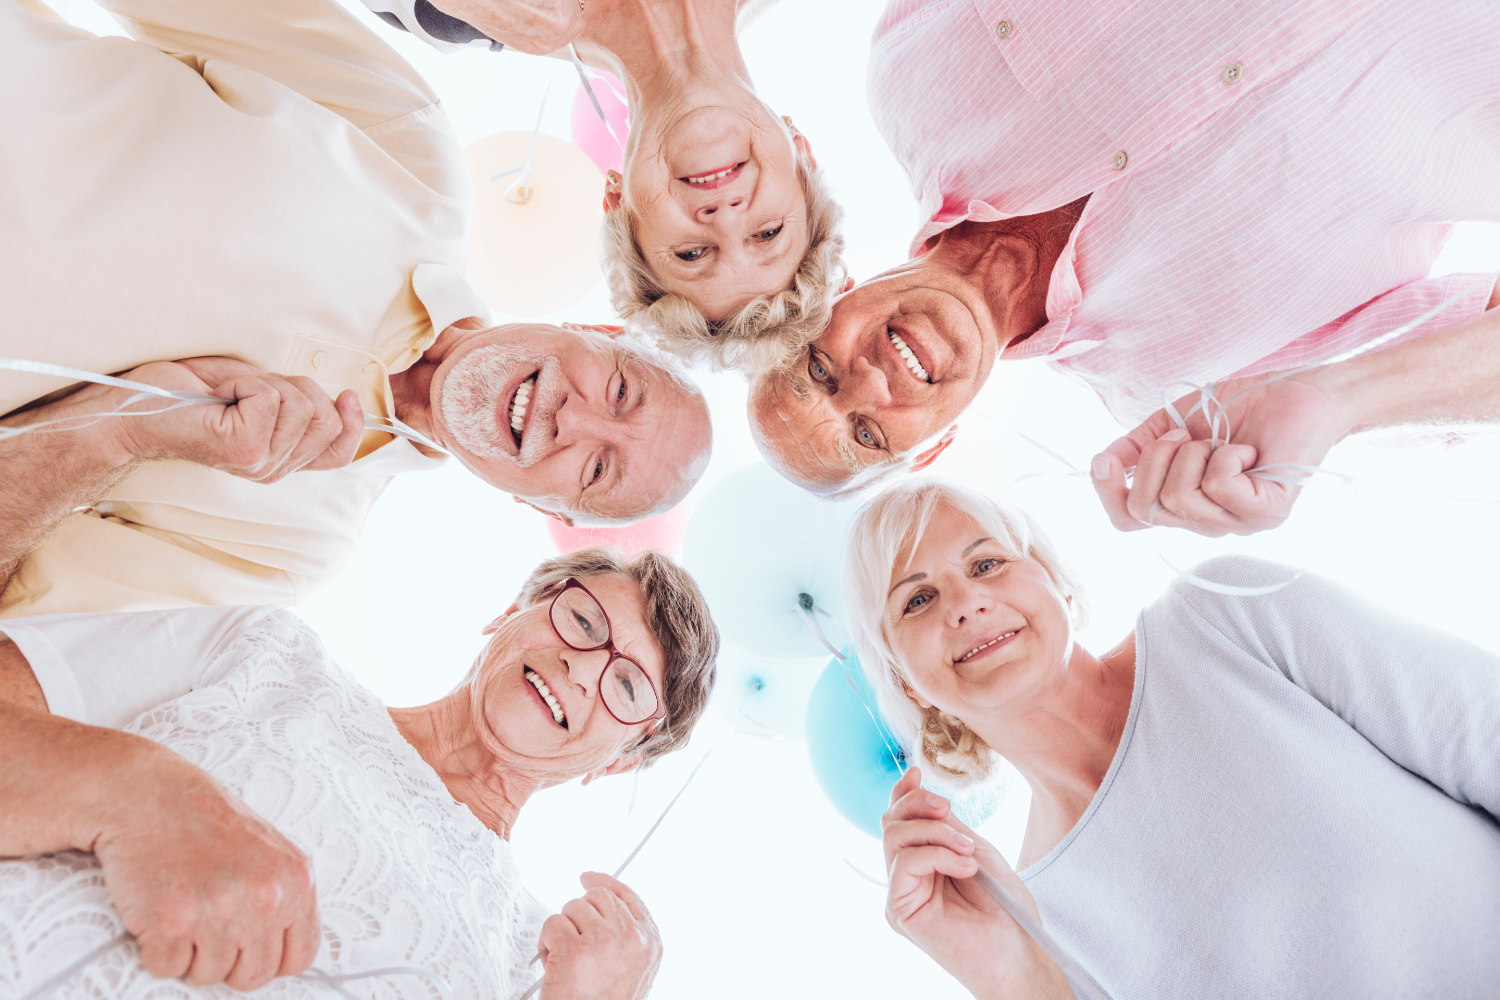 5 Things Older Adults Can Do to Improve Their Self-Esteem as They Age